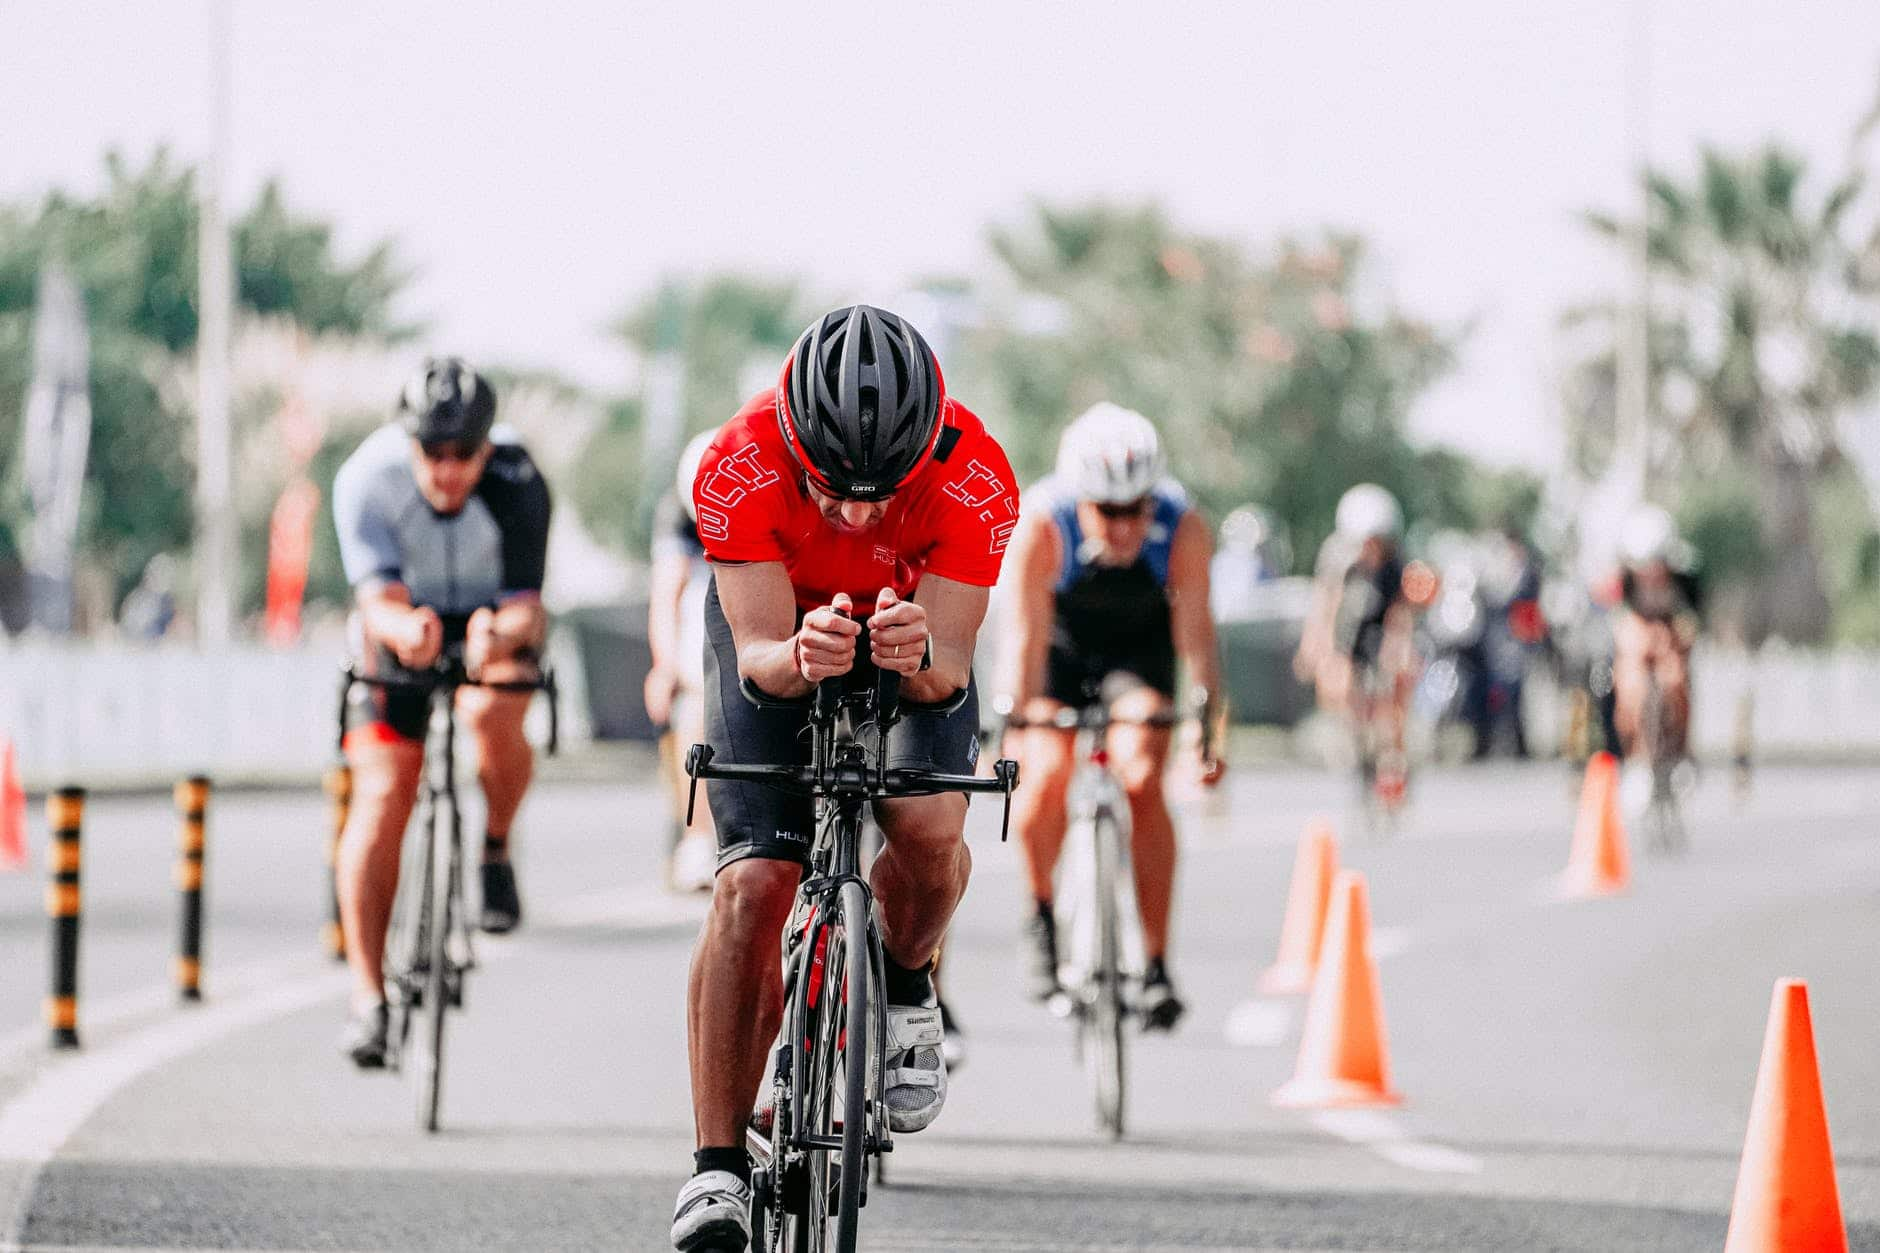 THE 2020 MIKESBIKES WORLD CHAMPS QUALIFYING ROUND COMPETITORS